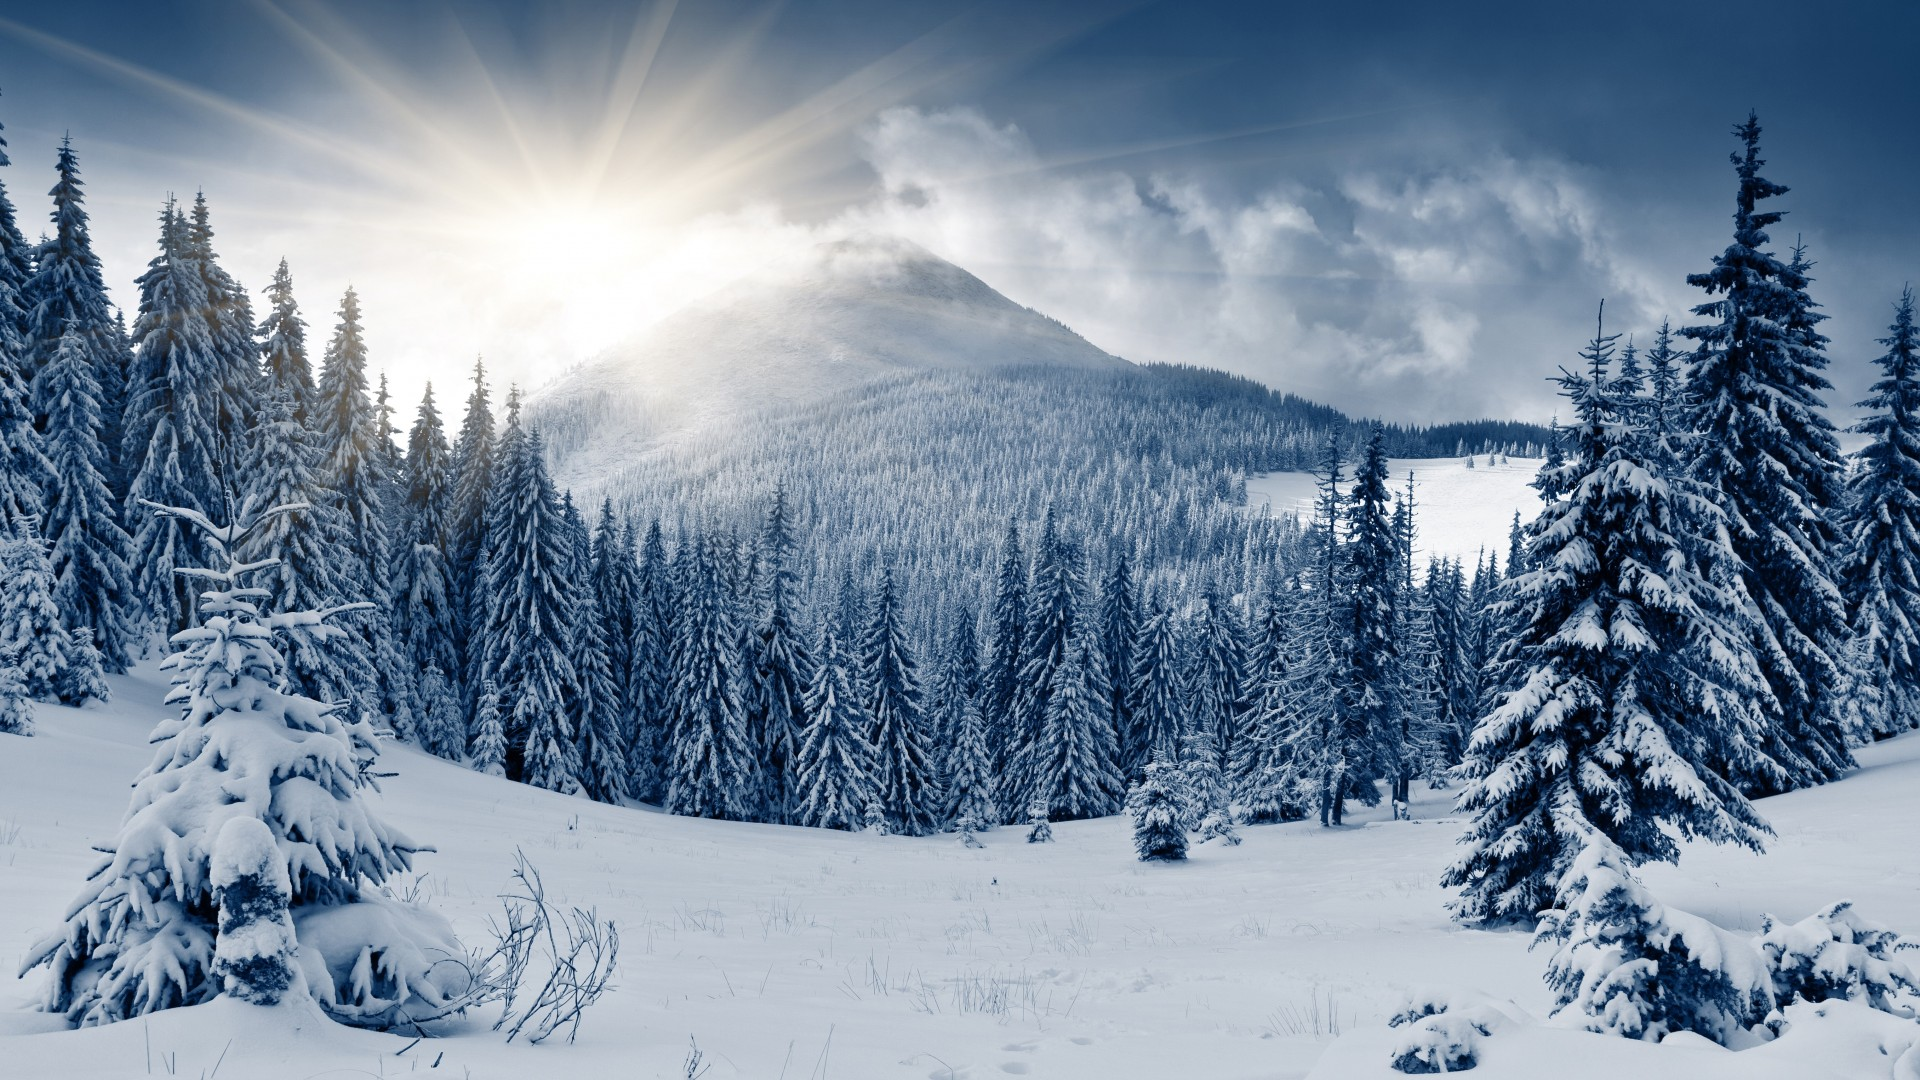 зимний лес, 5k, 4k, гора, солнце, снег, елки, winter forest, 5k, 4k wallpaper, mountain, sun, snow, fir-trees (horizontal)